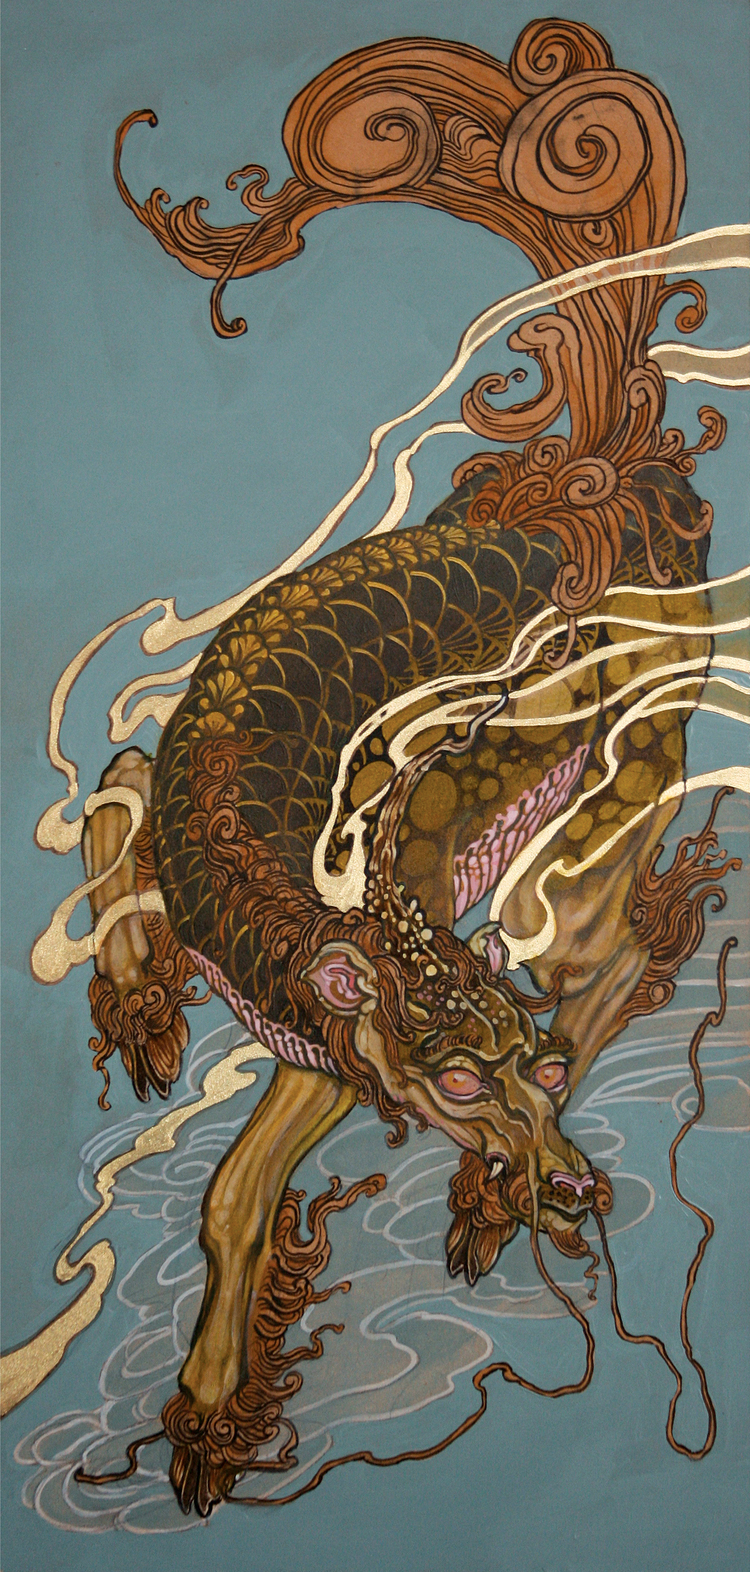 Christopher Brand.  Untitled (Kirin) . 2010 - acrylic on board, 2' x 1'.